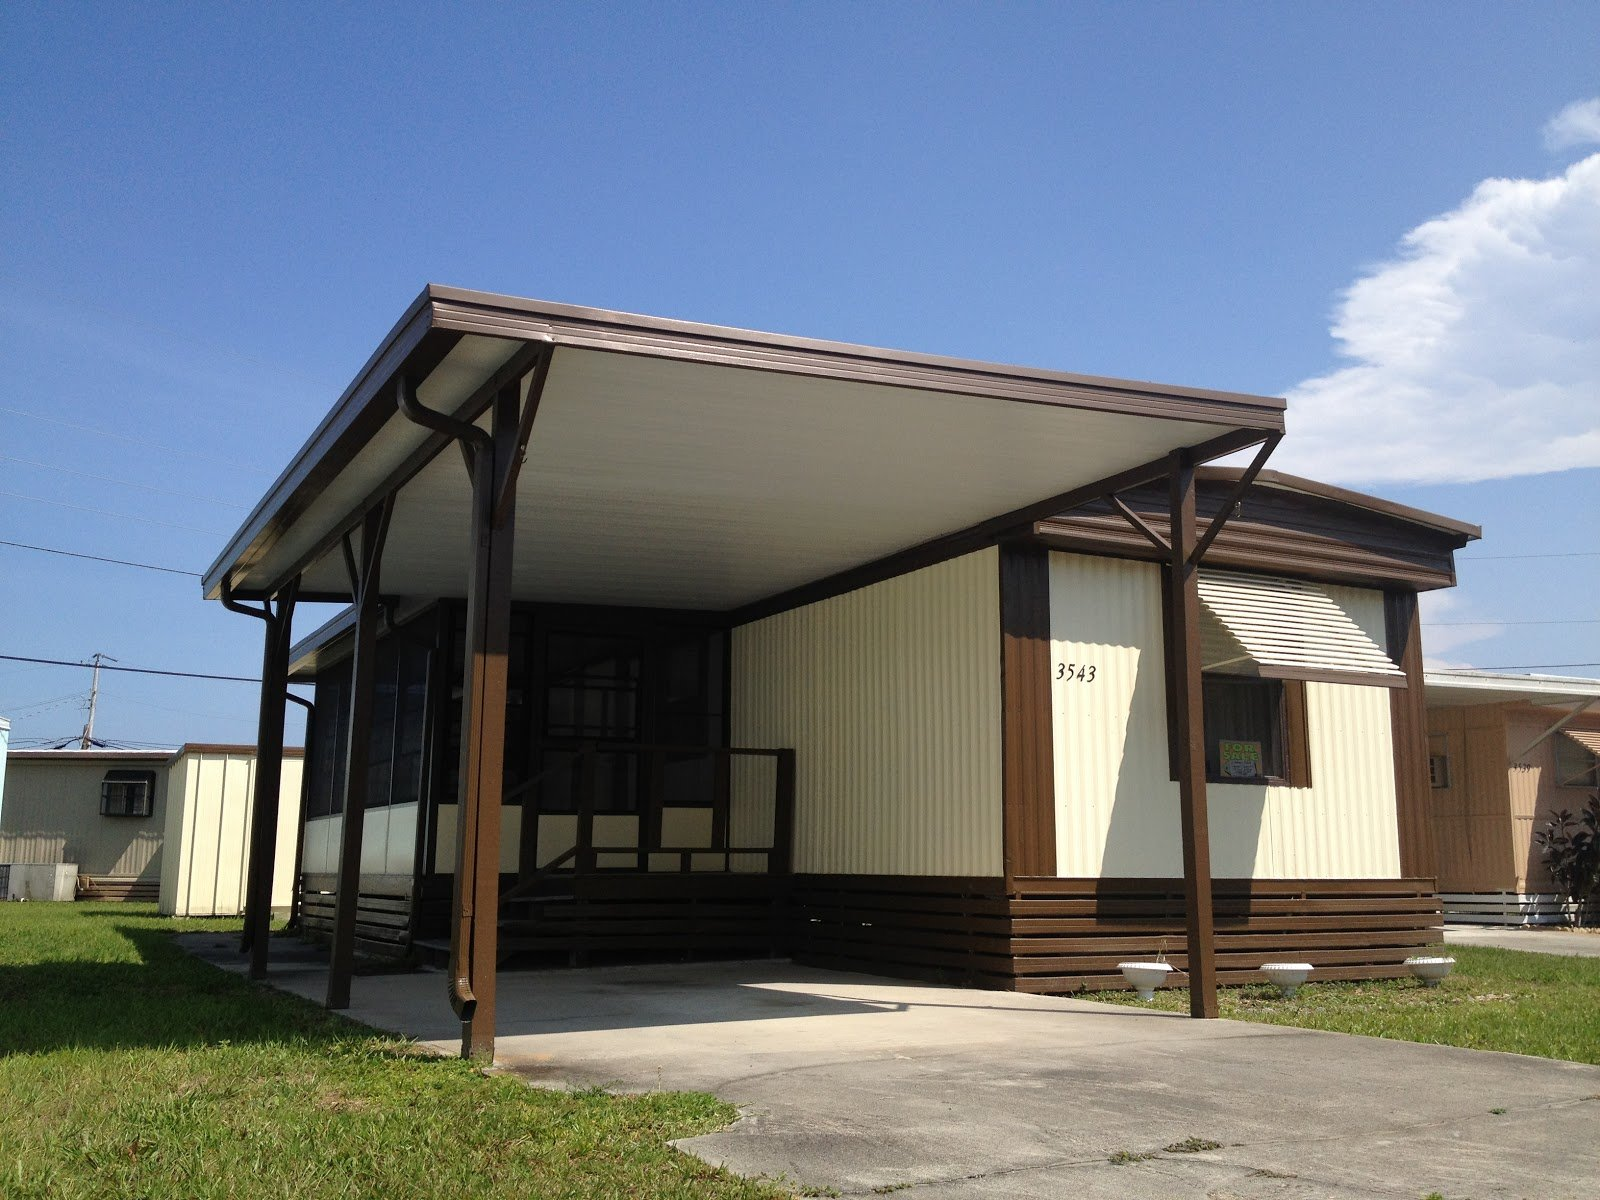 Best Tropical Trail Villa Sold 2 Bedroom 1 Bath Mobile Home For Sale 12 000 With Pictures